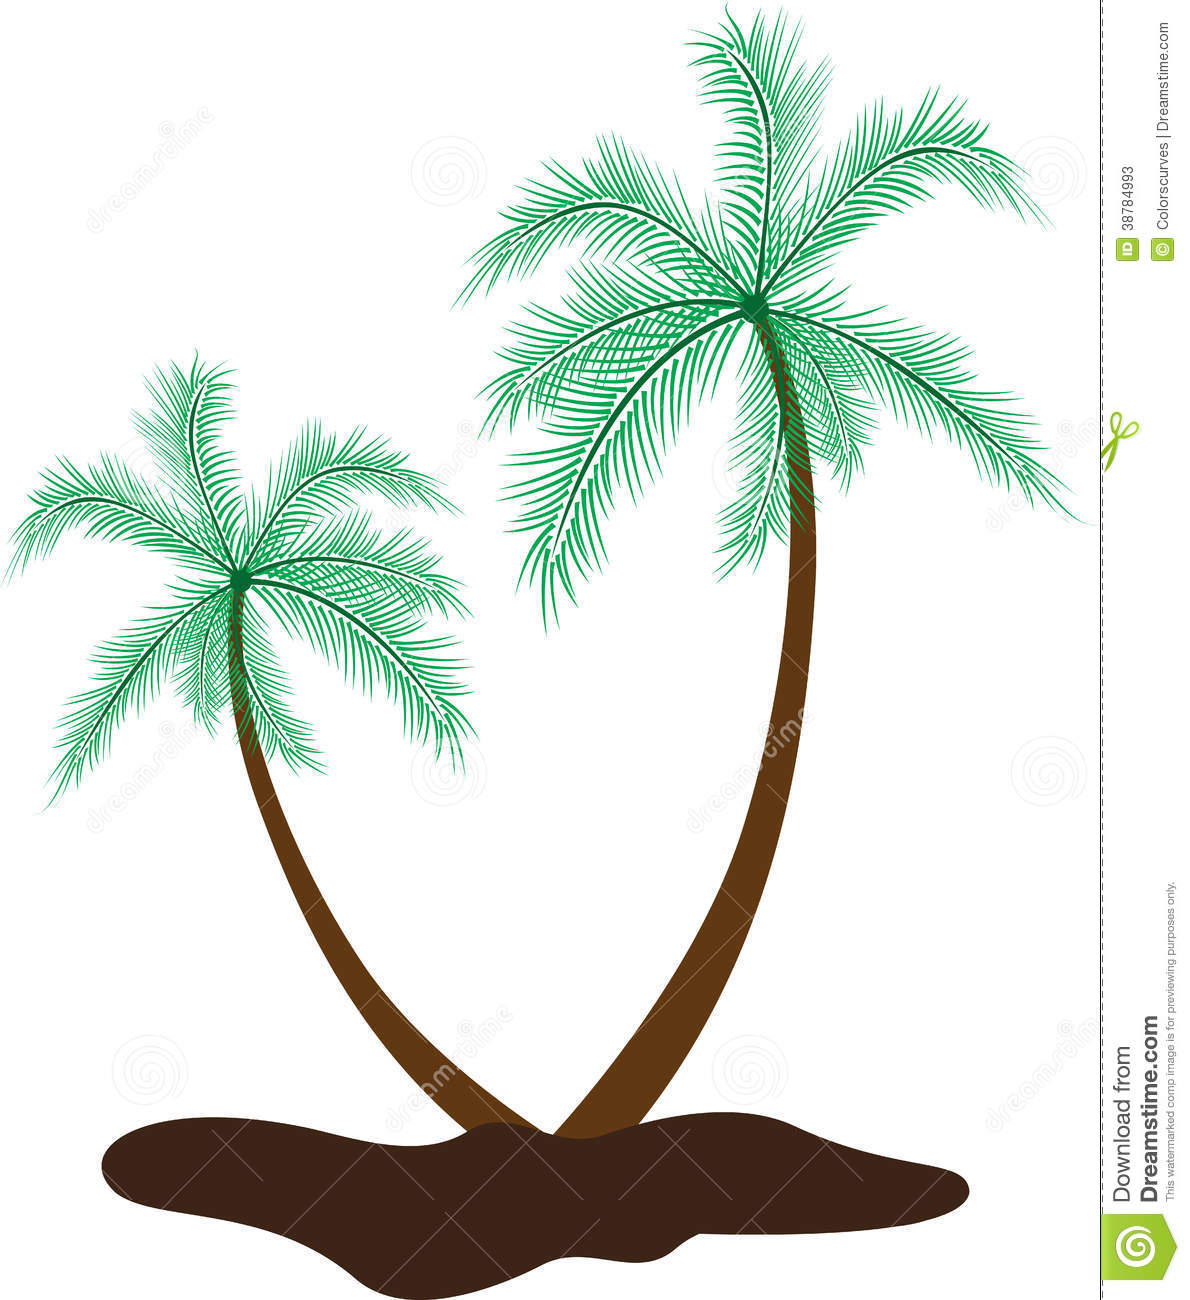 Coconut Trees Drawing at GetDrawings.com | Free for personal use ...